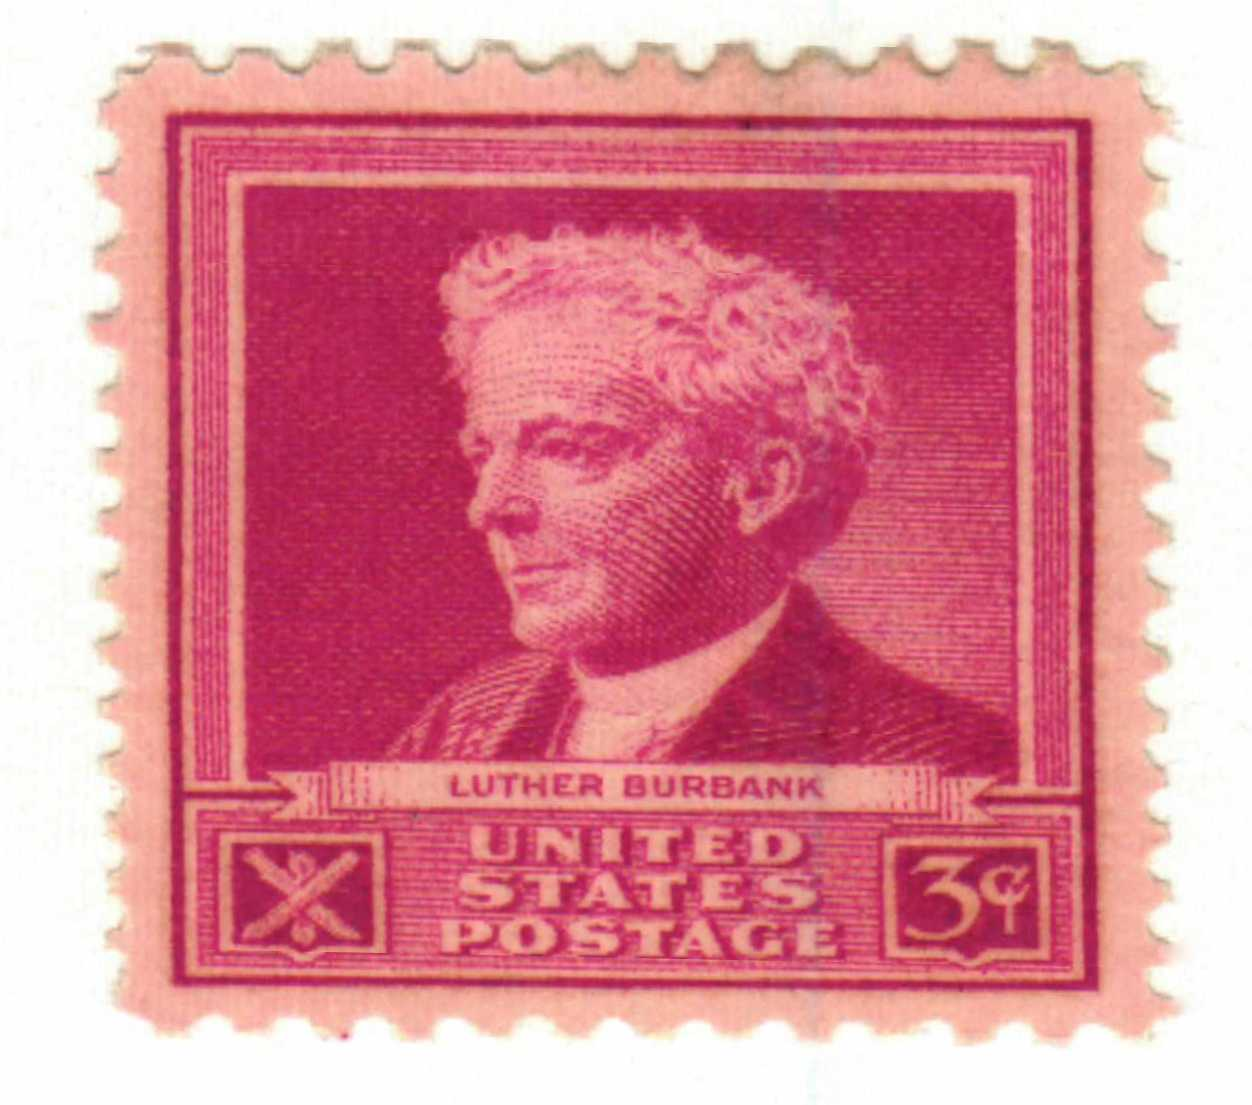 1940 3c Luther Burbank For Sale At Mystic Stamp Company